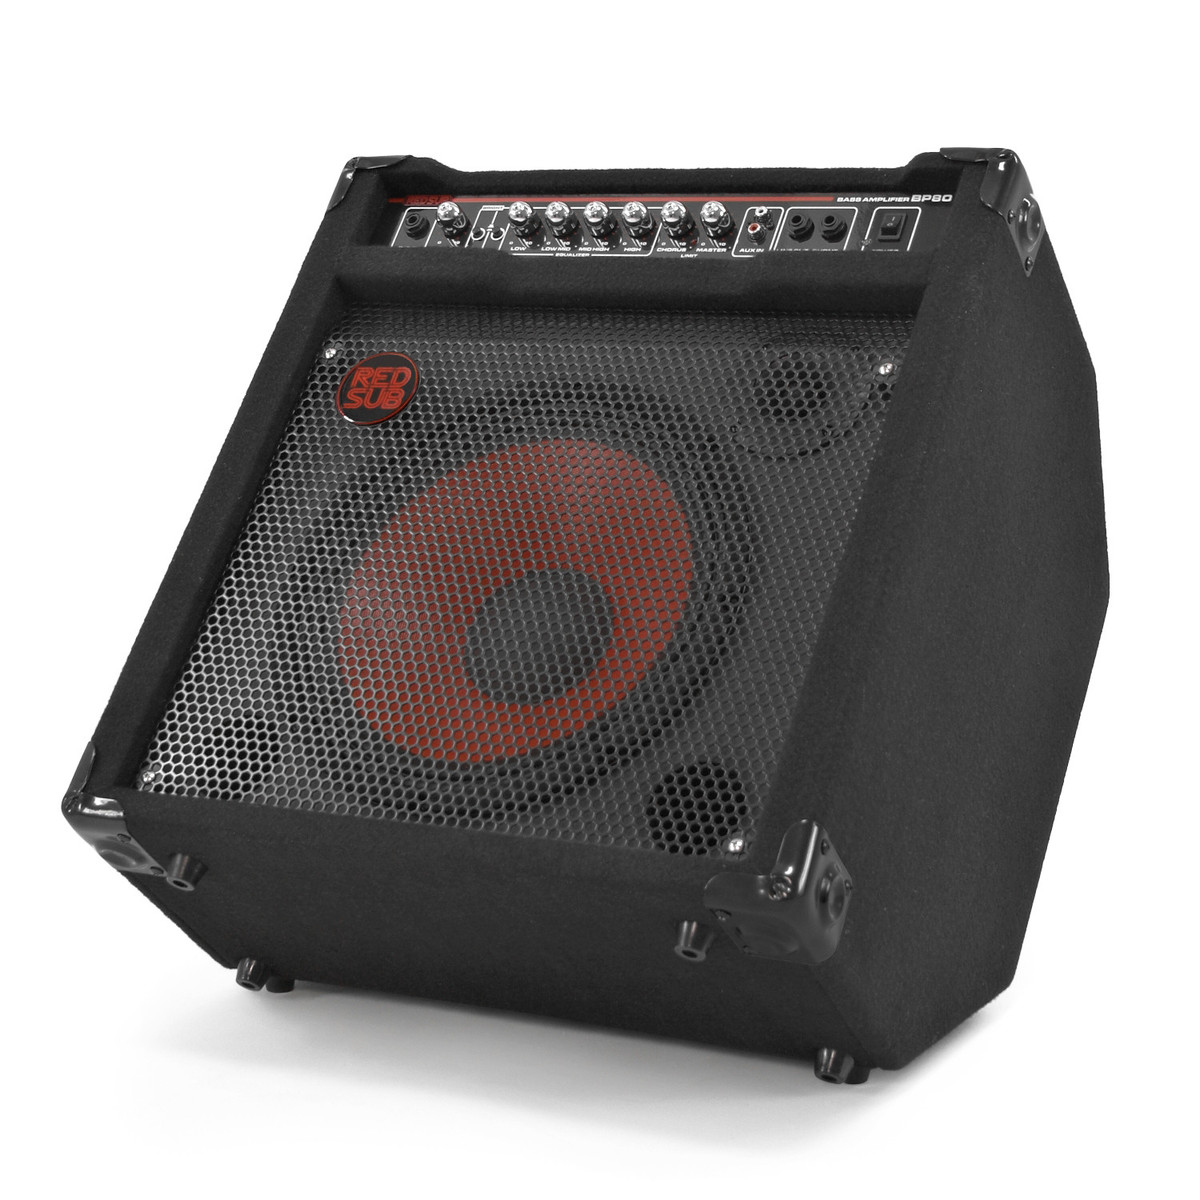 redsub bp80 80w bass guitar amplifier box opened at. Black Bedroom Furniture Sets. Home Design Ideas